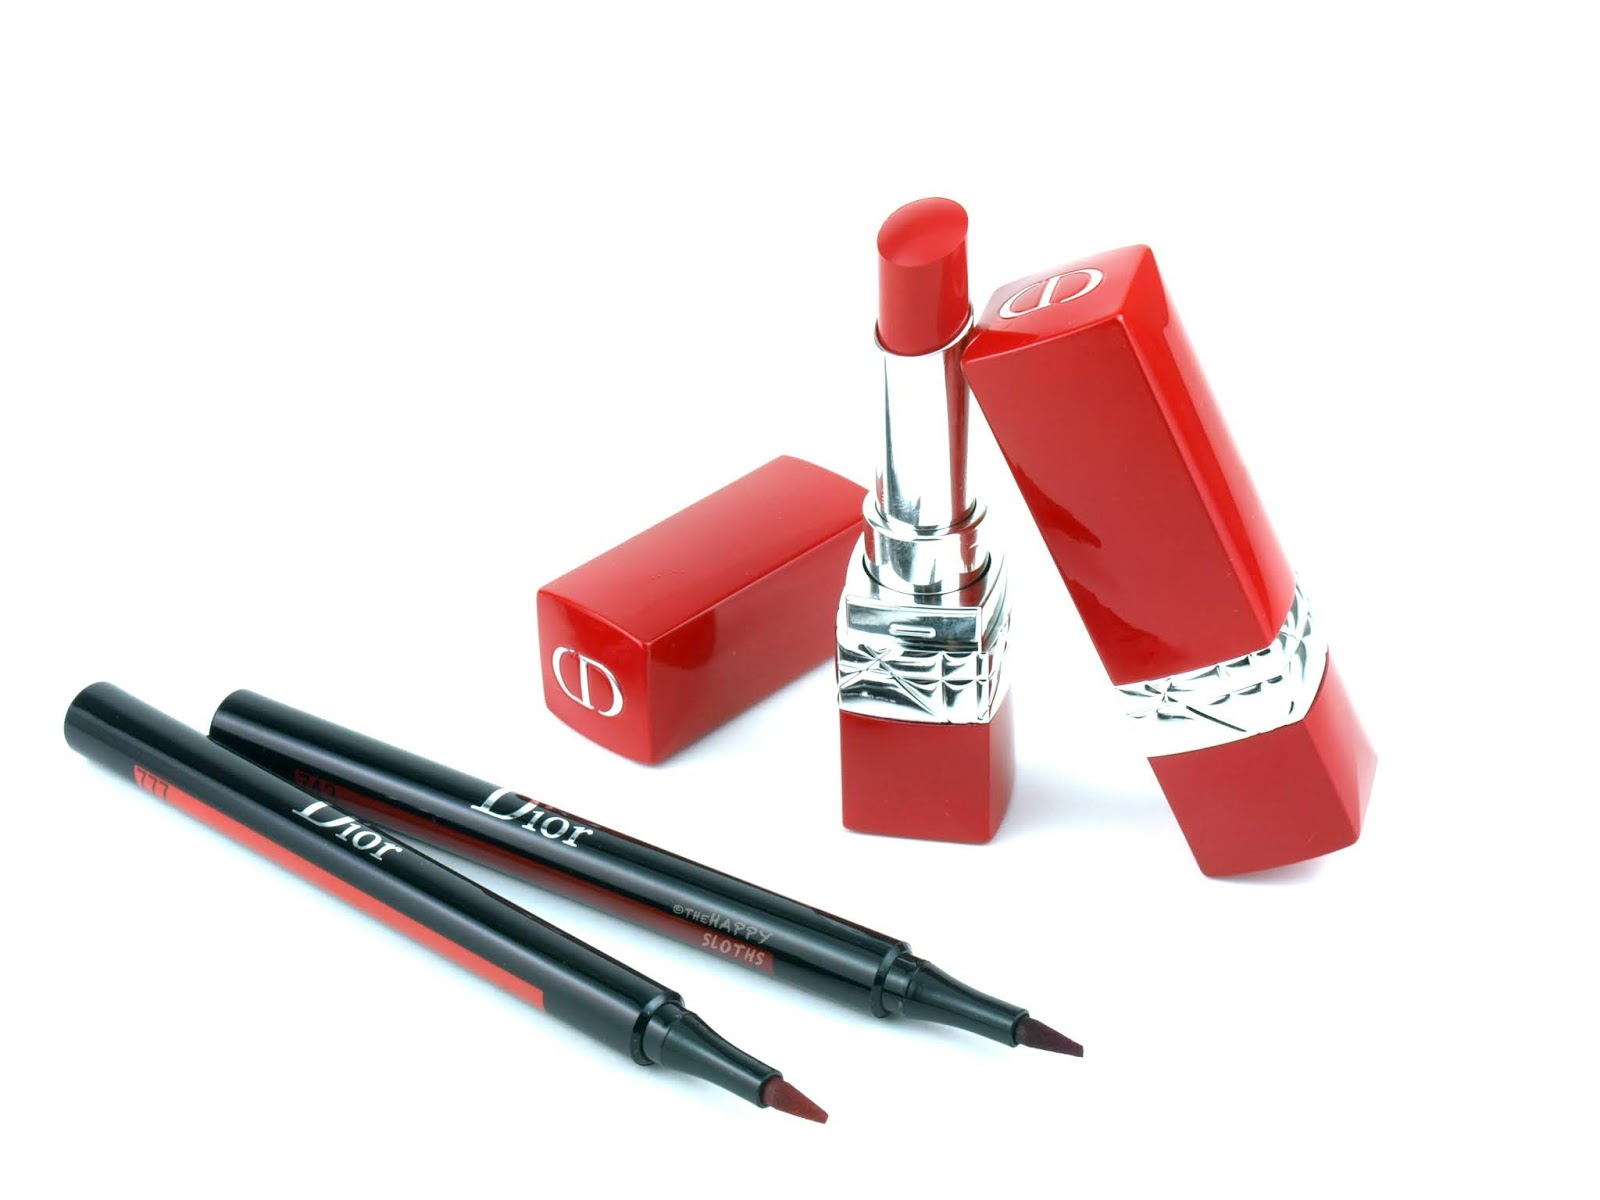 Dior | Ultra Rouge Ultra Pigmented Hydra Lipstick & Ink Lip Liner: Review and Swatches